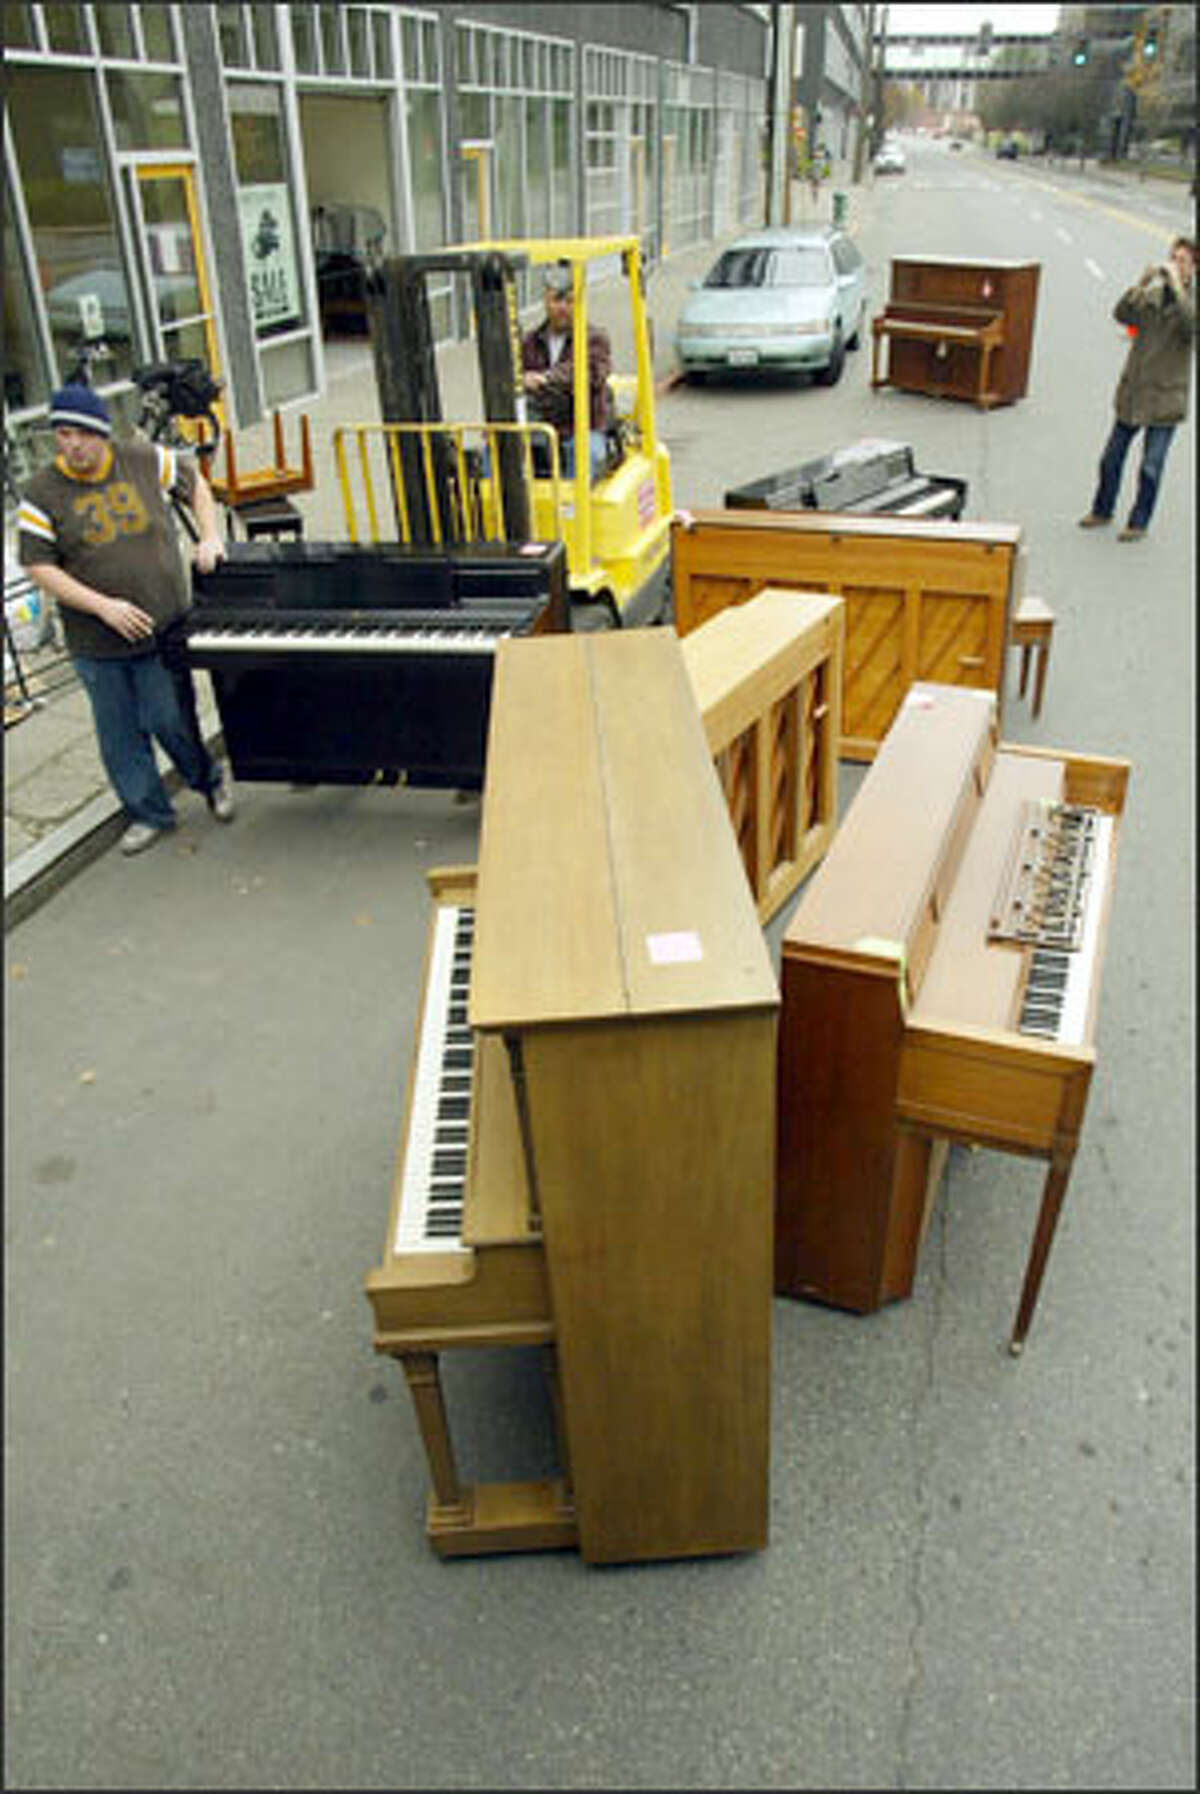 Mike Ballou from Pro Piano Move, left, transports one of 36 in Seattle for later shipment to Kenya. Seattle Piano Gallery sends old pianos to a Kenyan-owned repair business, which fixes them and sells them. The gallery says pianos and work are badly needed in Kenya. If anyone wishes to donate an old piano, the gallery will pay for pick up, moving and storage.